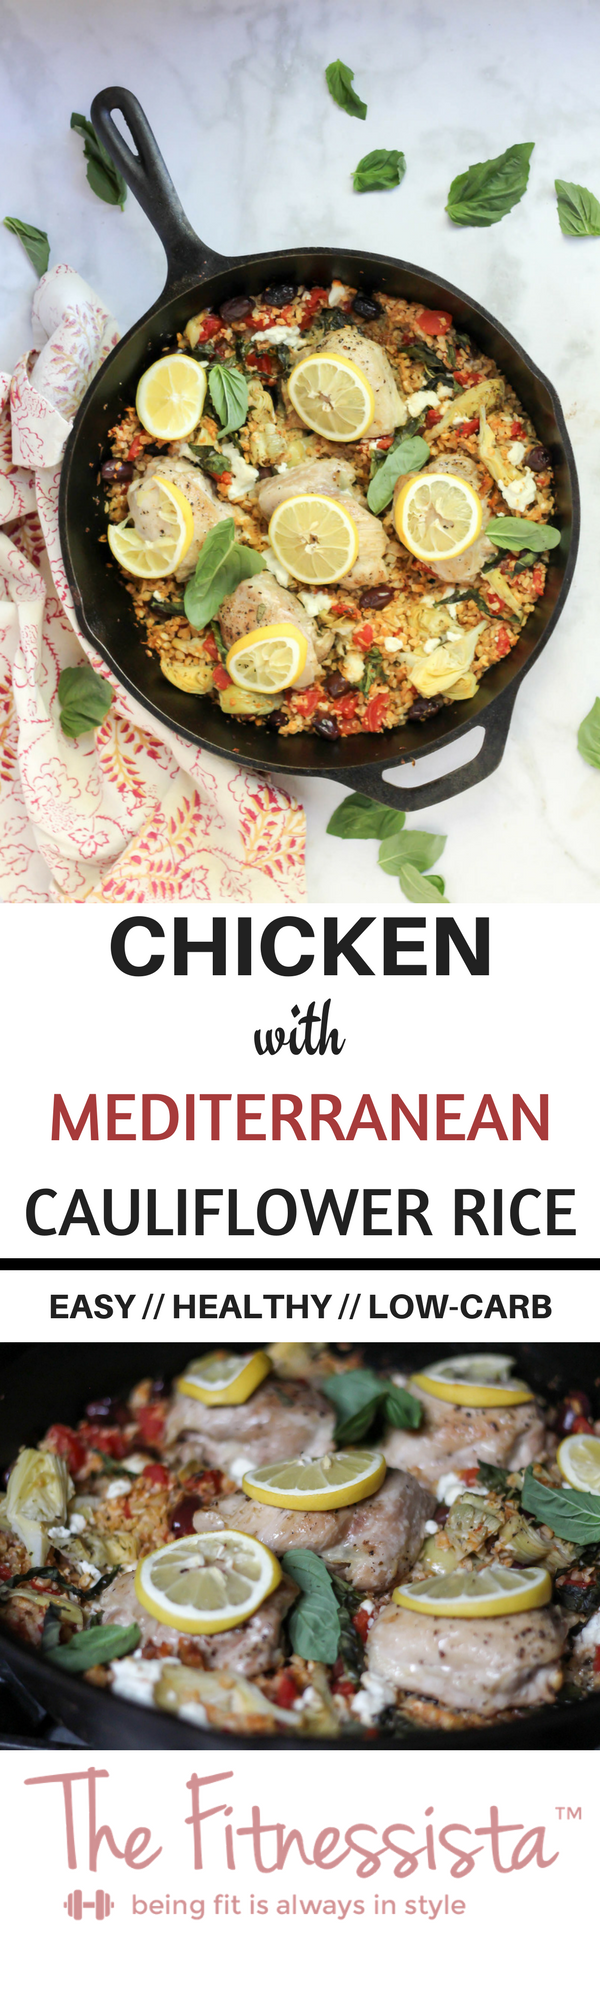 An easy, healthy dinner recipe! This only uses one pot and makes cauliflower rice taste delicious. Check out the recipe for this chicken with Mediterranean cauliflower rice here. fitnessista.com